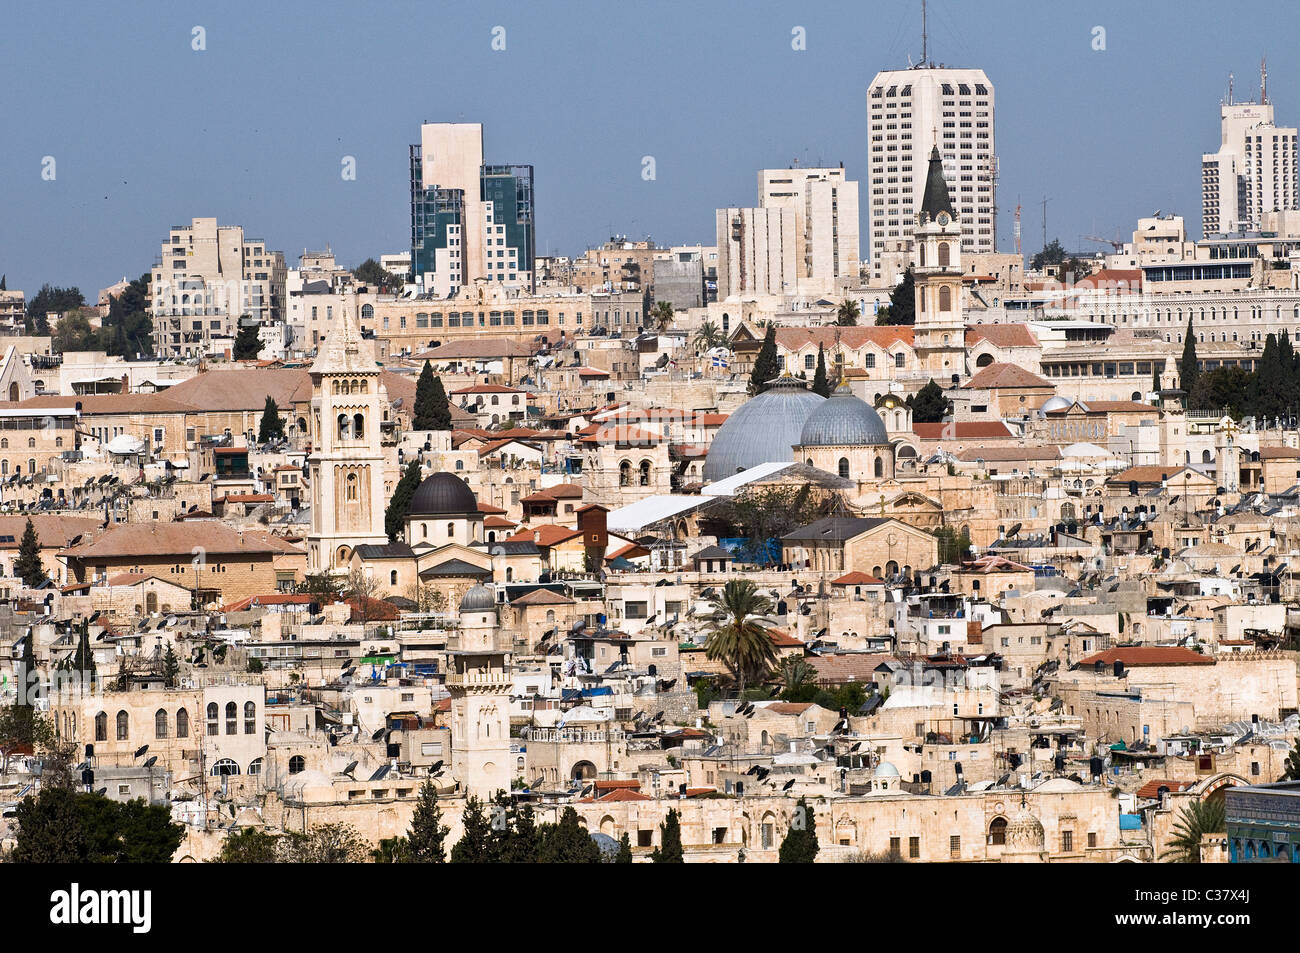 A view of the old city of Jerusalem including the church of the holy Sepulchre and the Lutheran church. - Stock Image